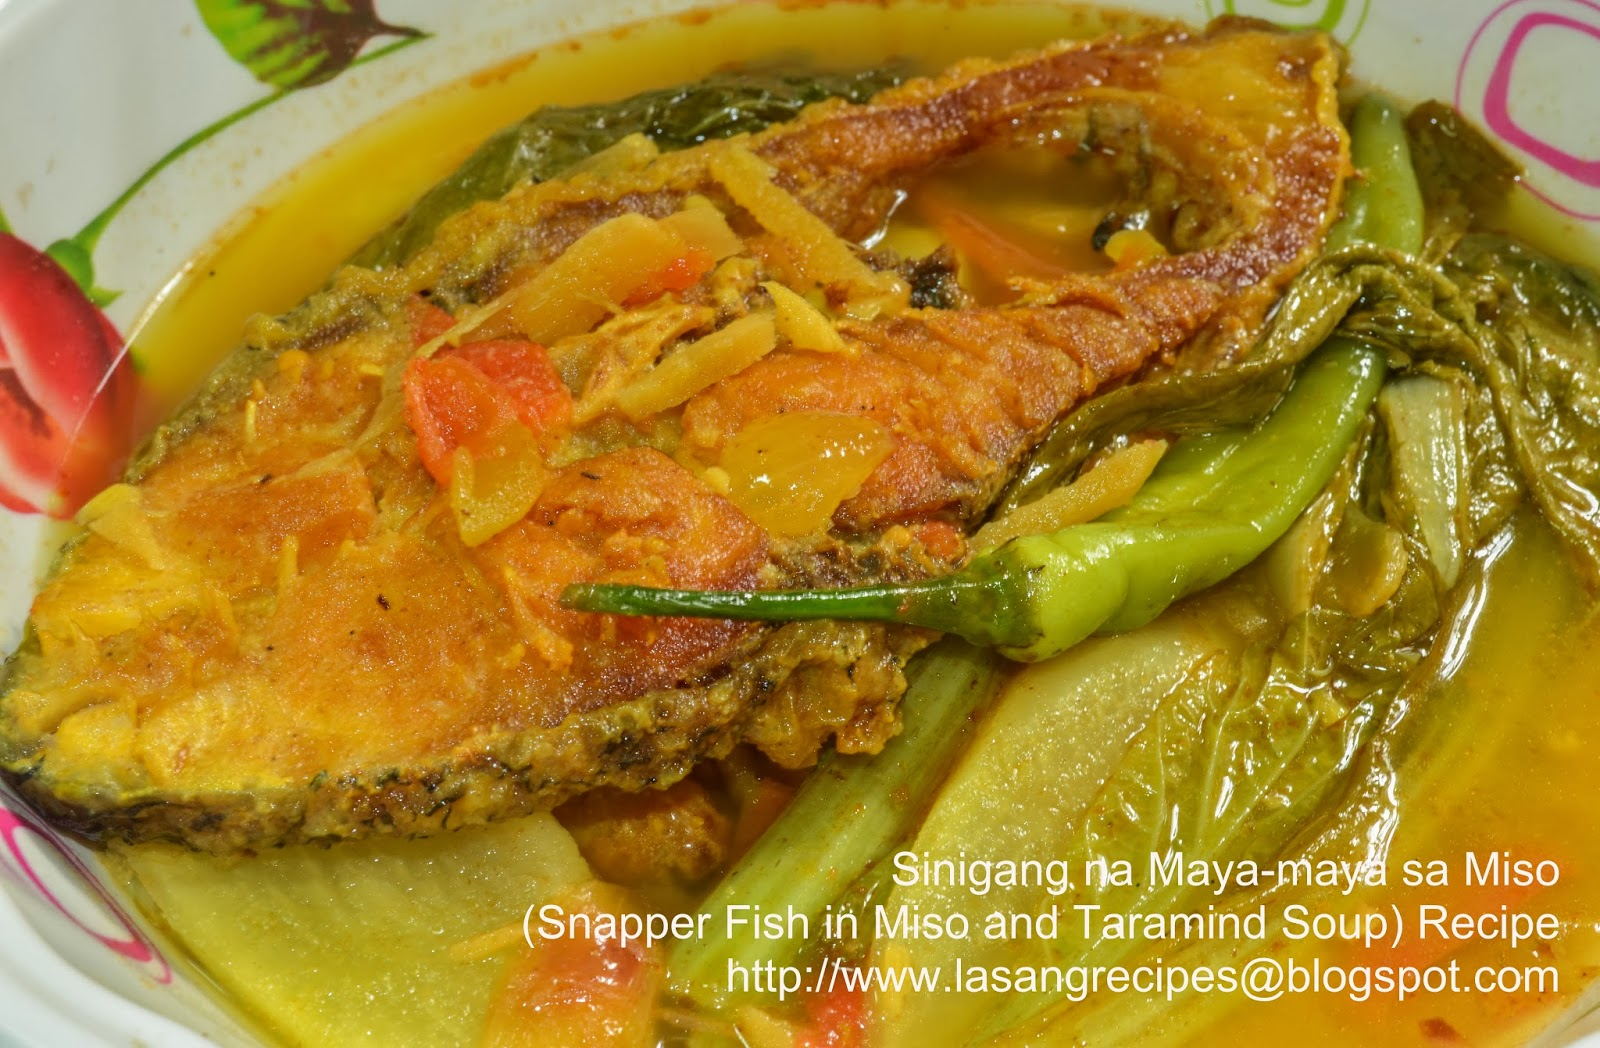 Lasangrecipes Sinigang Na Maya Maya Sa Miso Snapper Fish In Miso And Taramind Soup Recipe